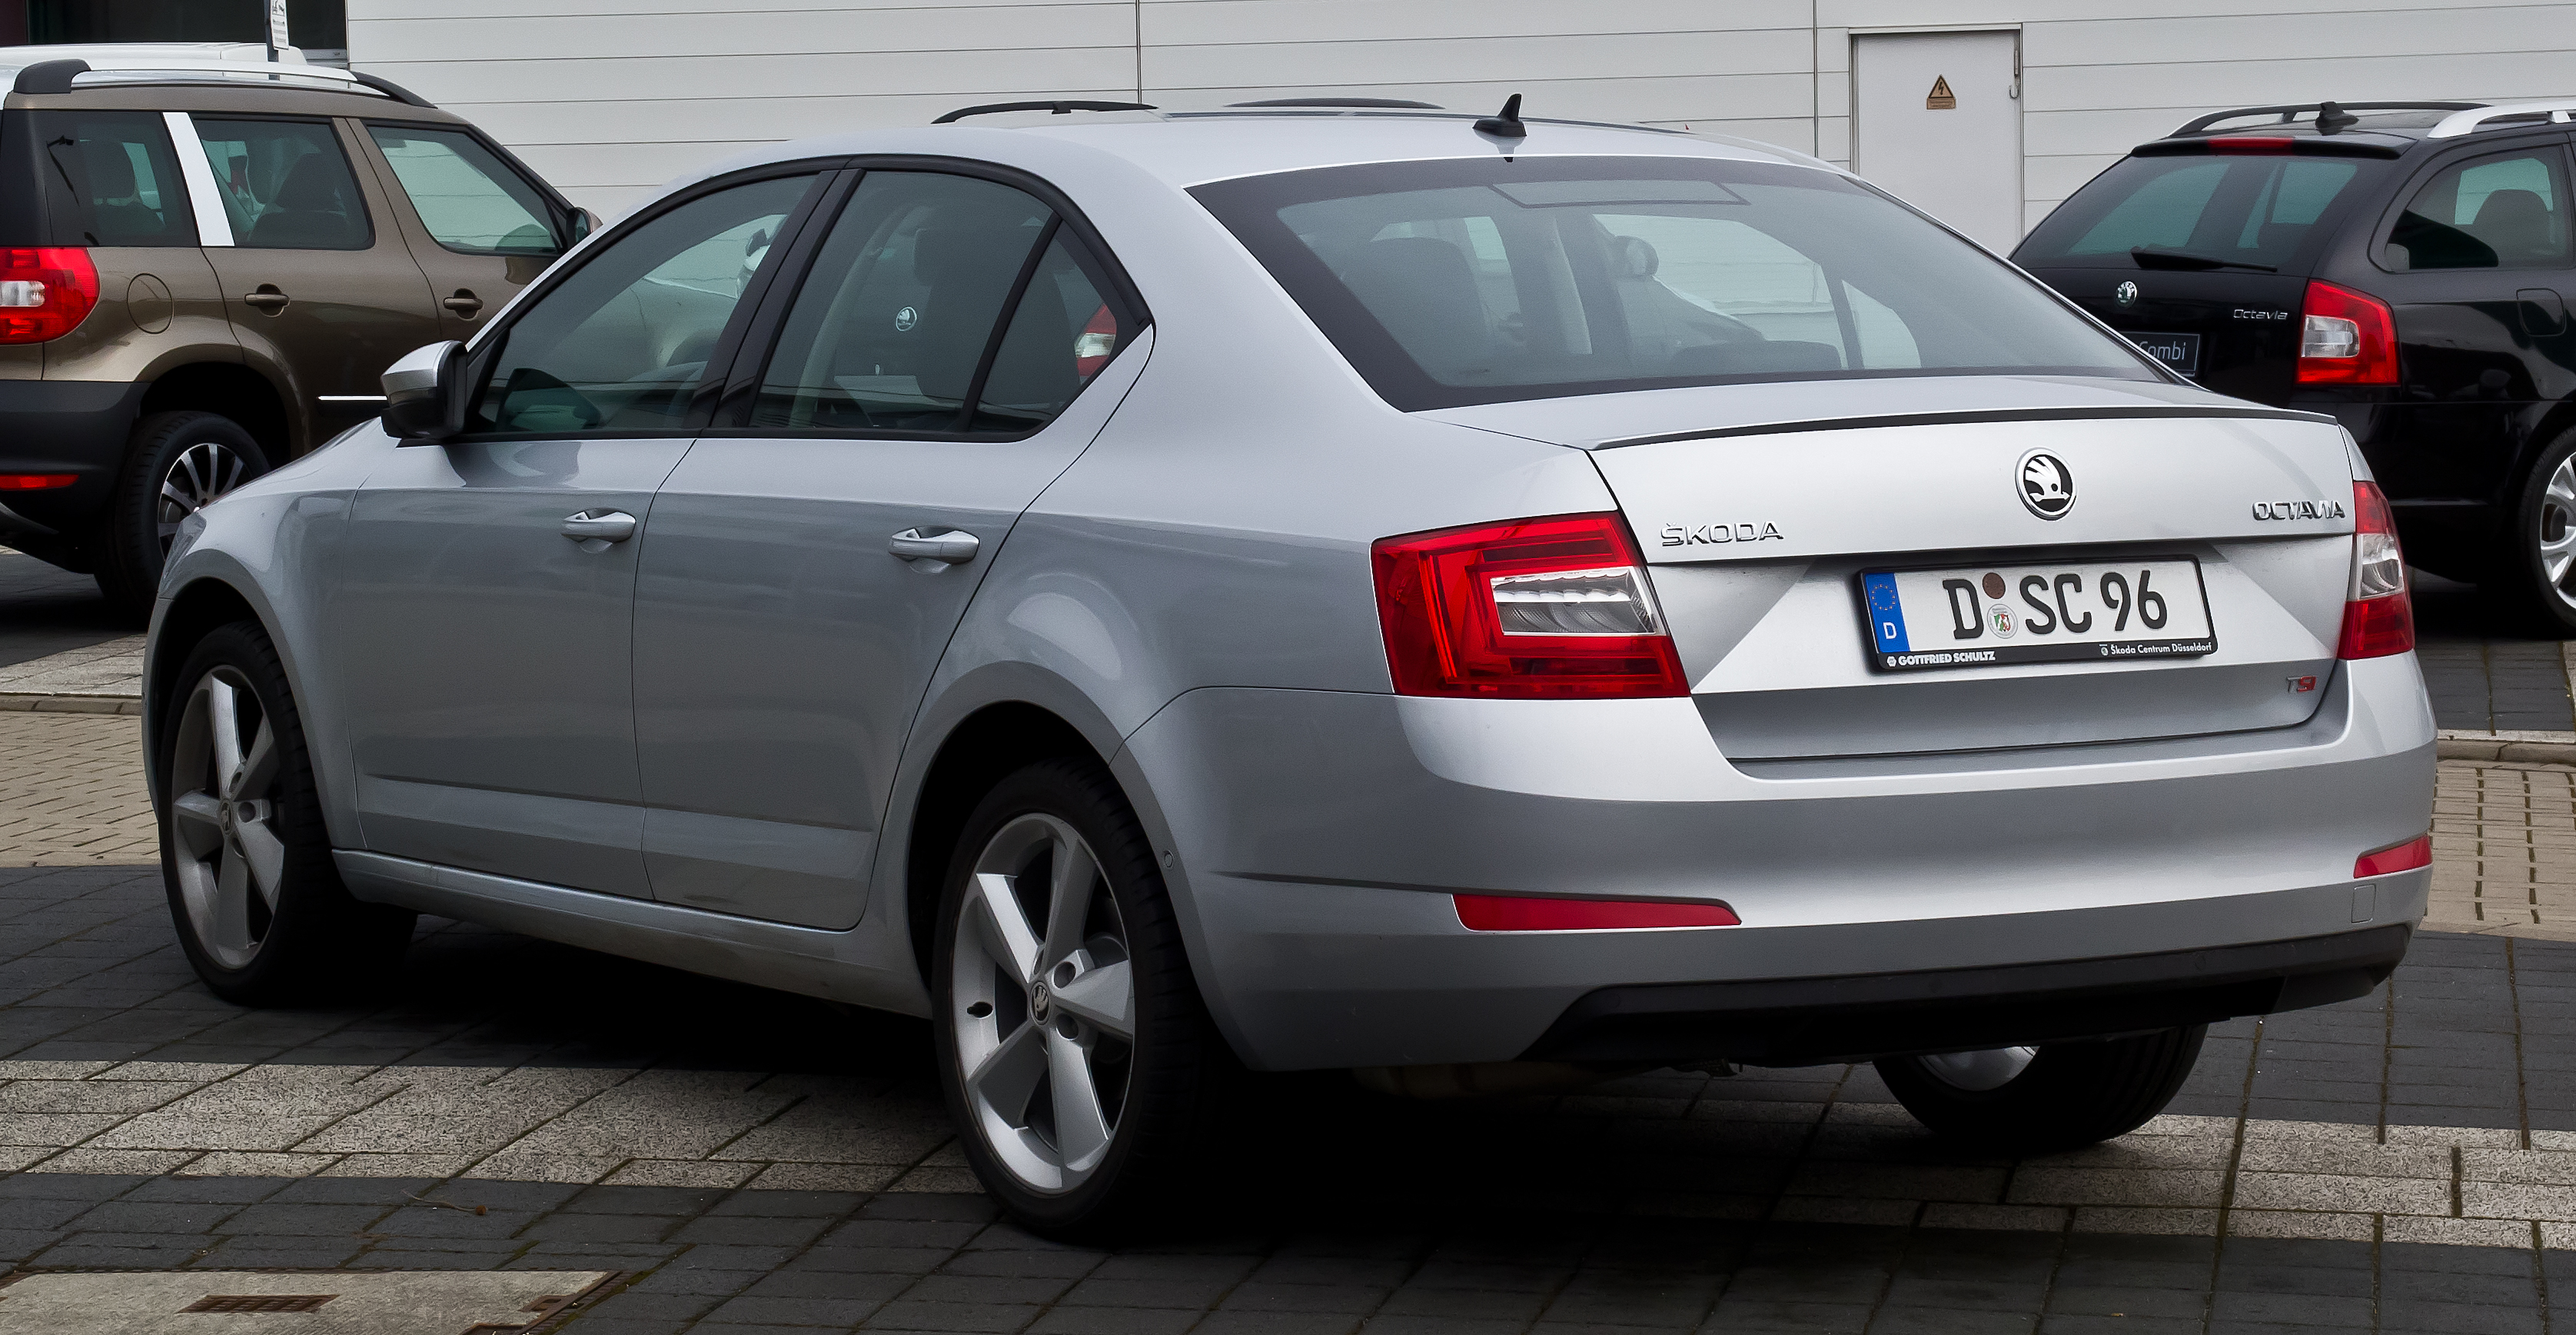 Skoda Octavia   pictures, information and specs - Auto-Database.com